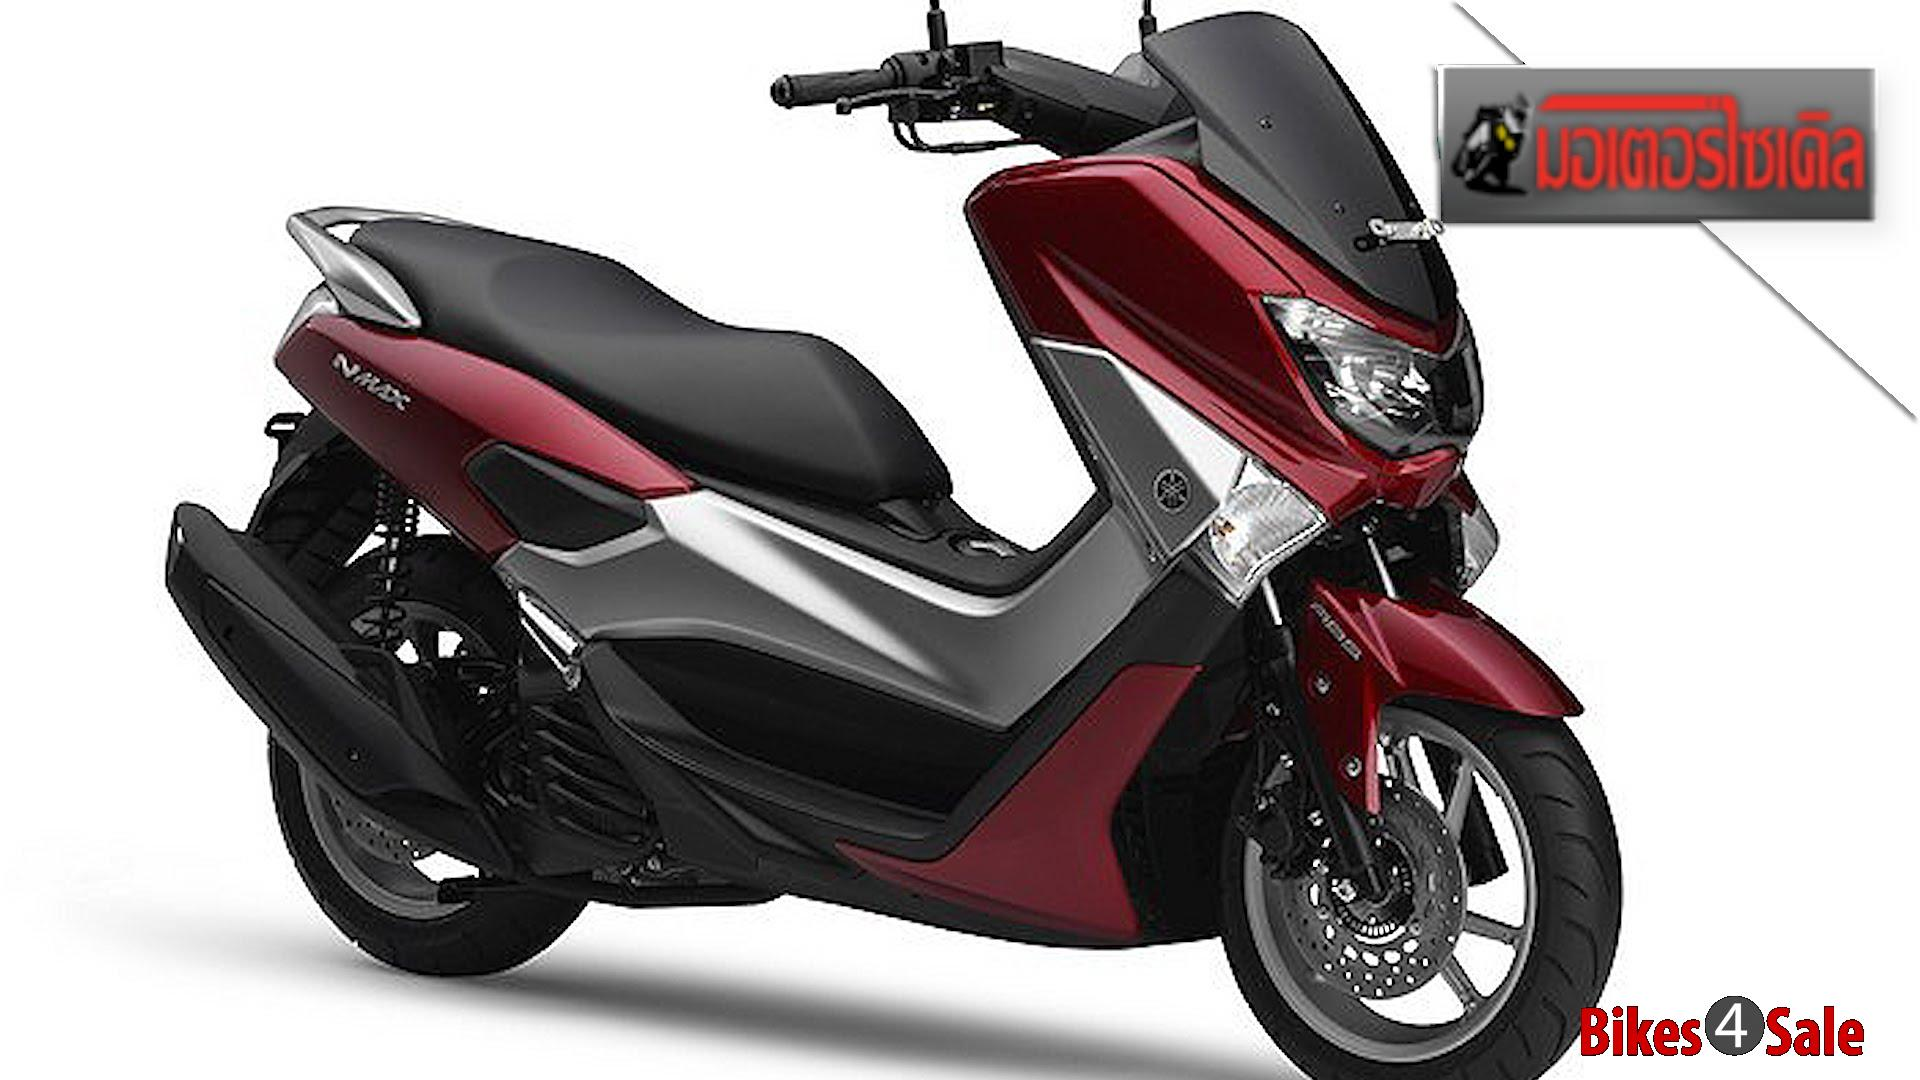 yamaha to launch nmax 155cc bikes4sale. Black Bedroom Furniture Sets. Home Design Ideas